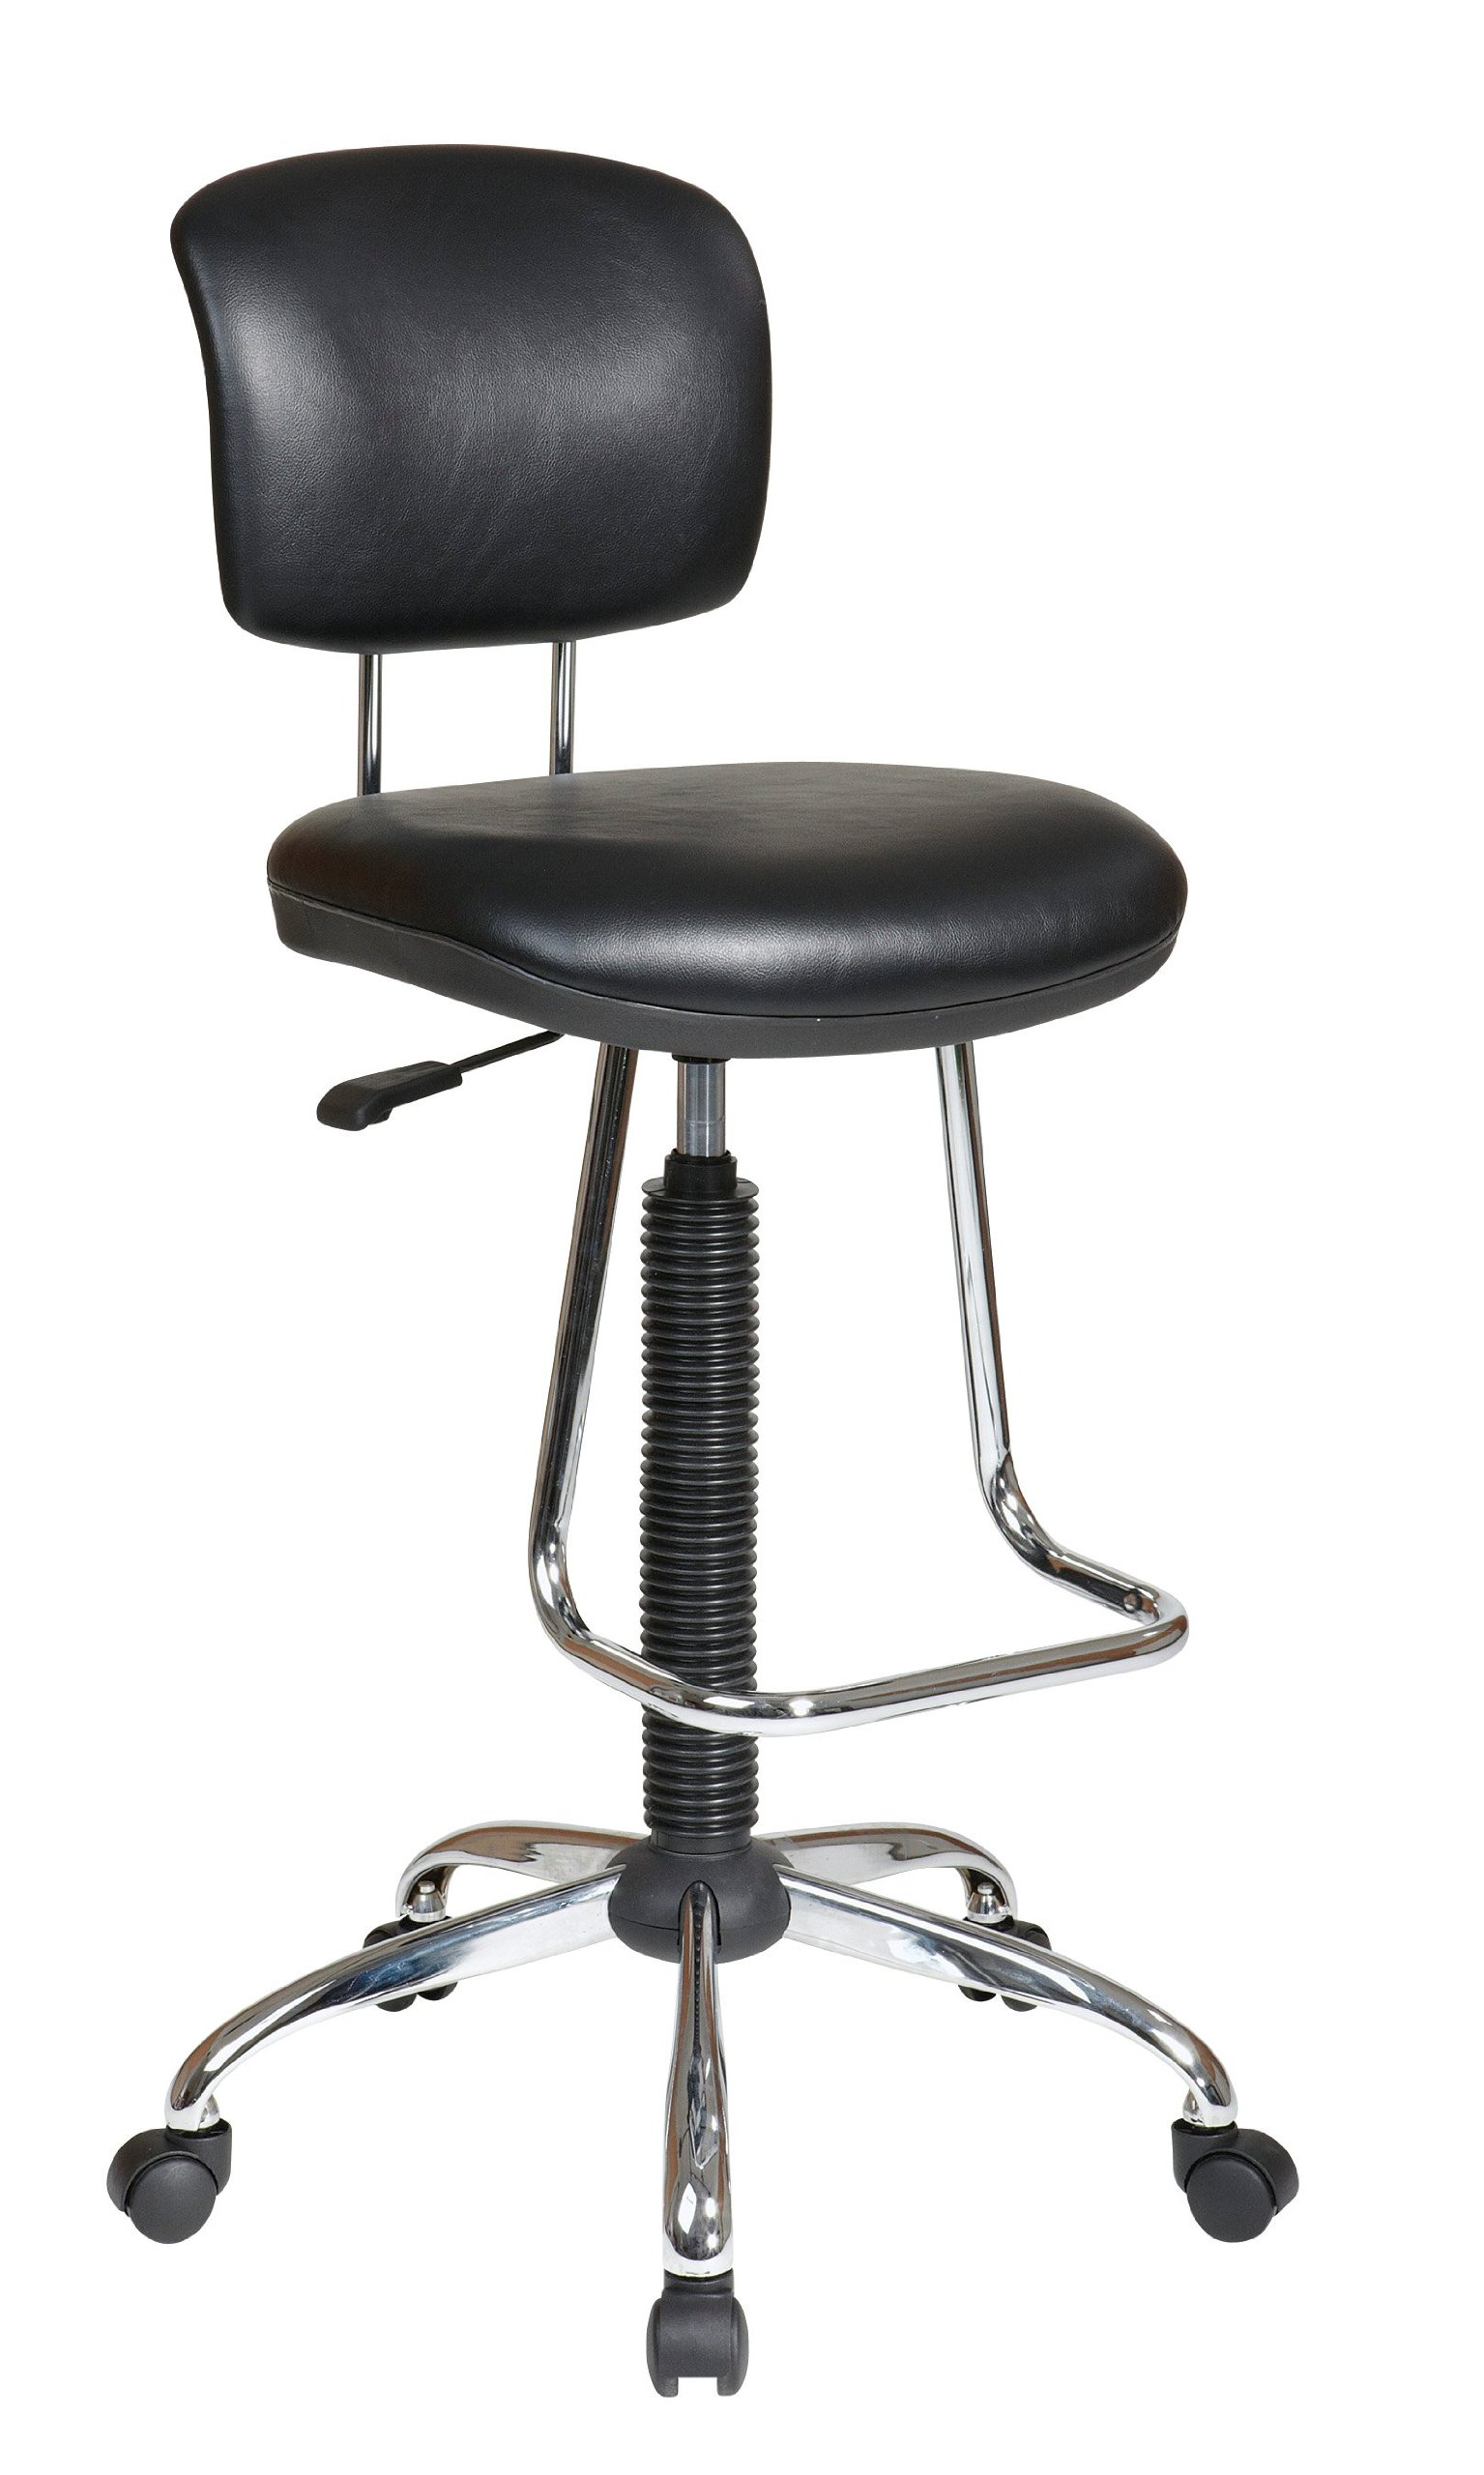 Office Star Pneumatic Drafting Chair with Casters and Chrome Teardrop Footrest, Vinyl Stool and Back by Office Star